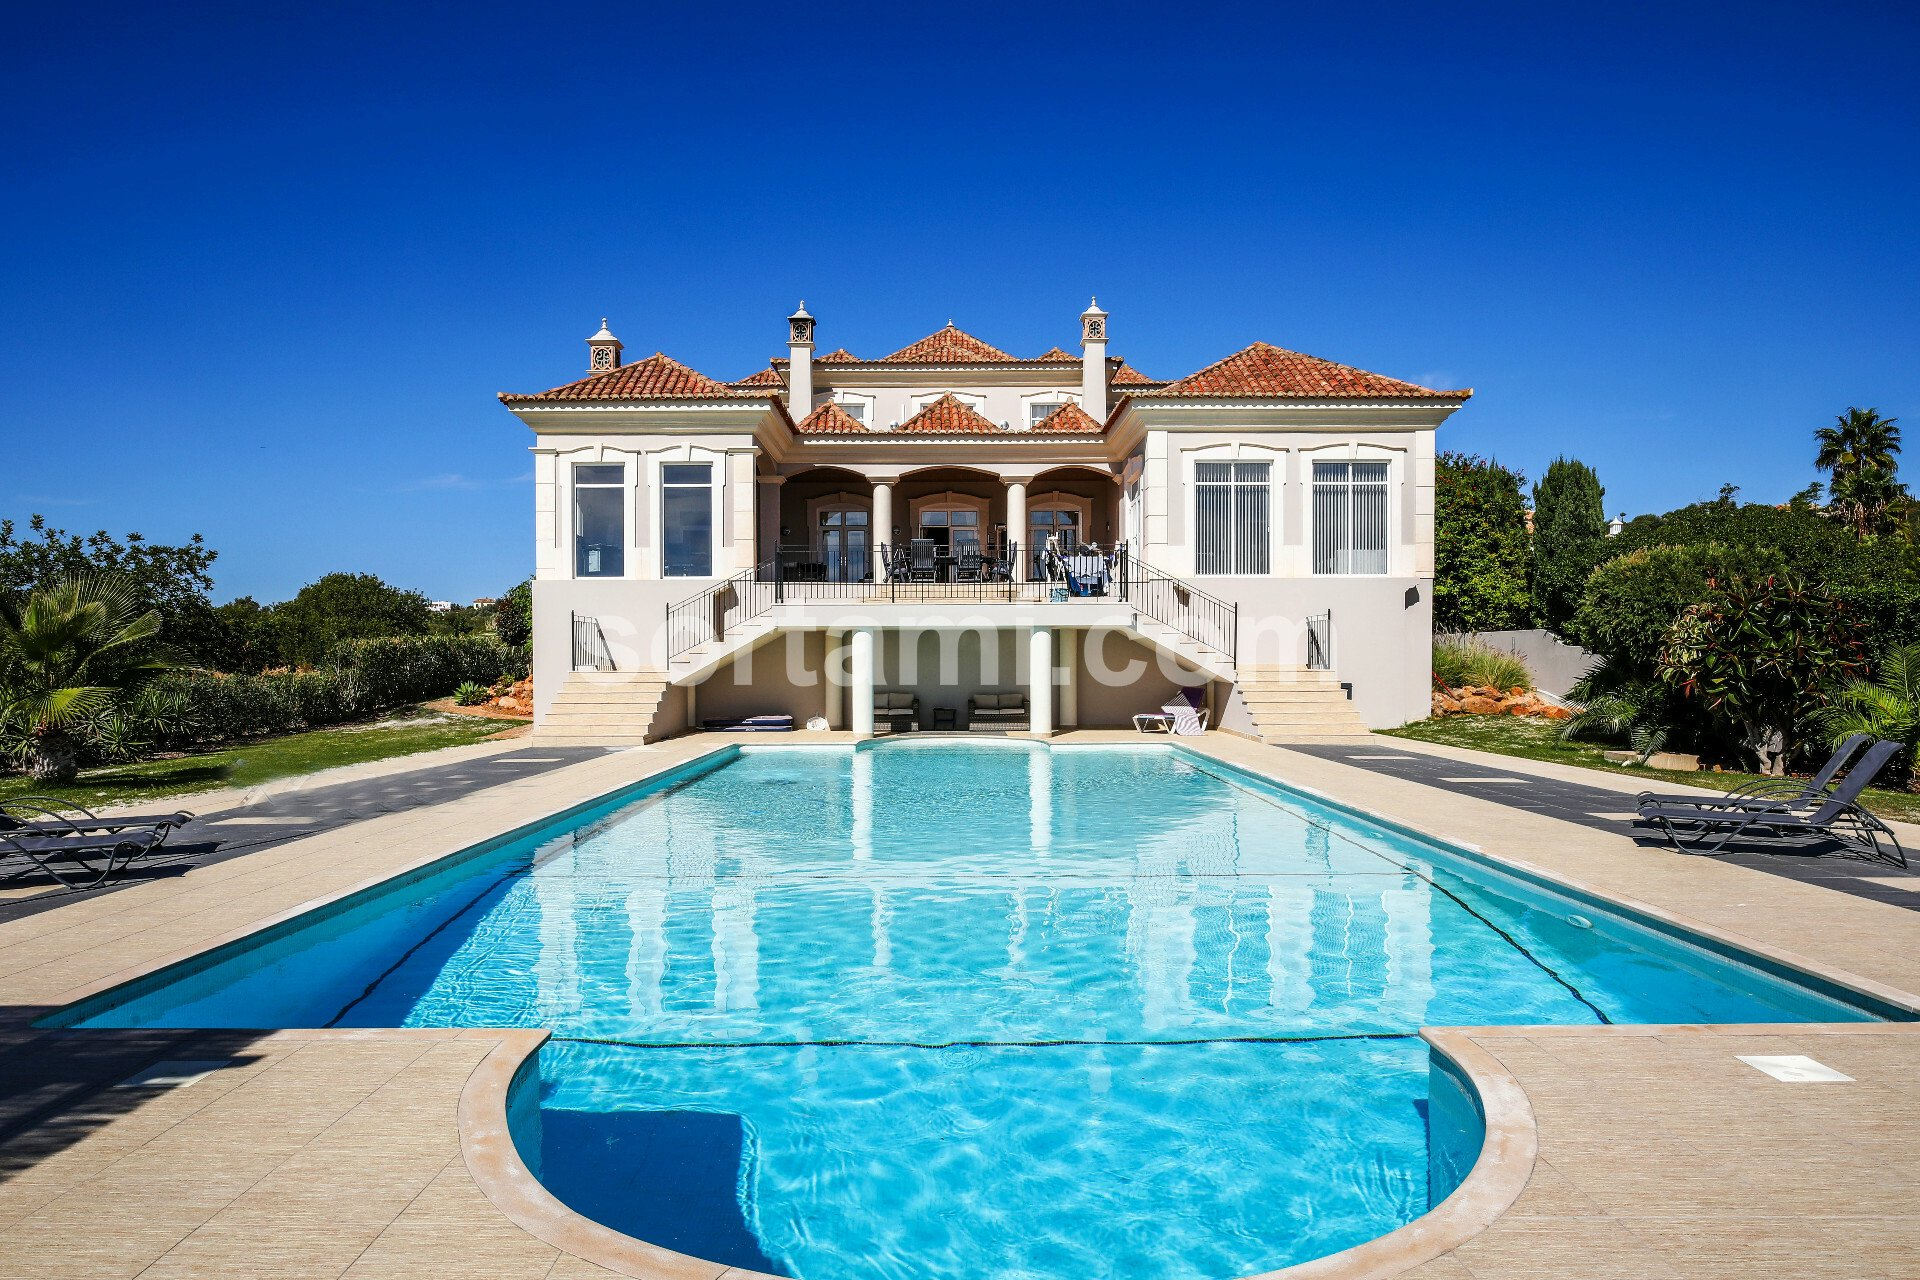 House in Algarve, Portugal 1